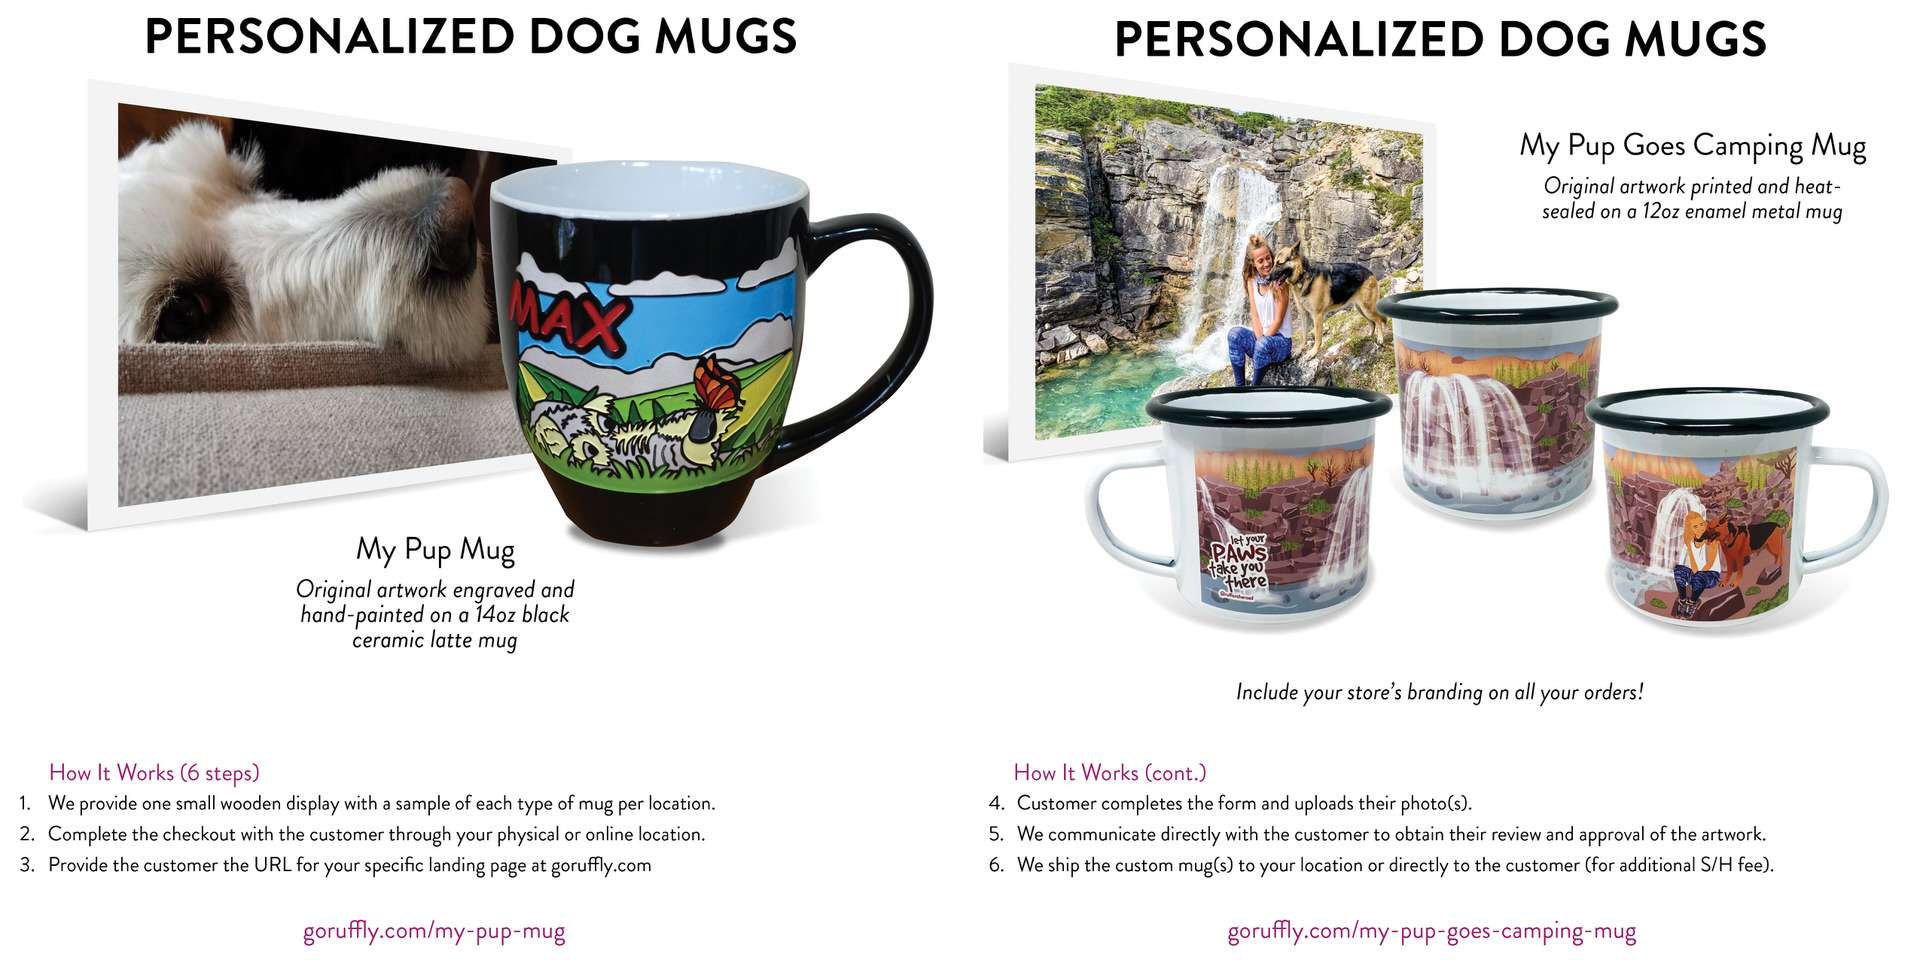 Pages 18 and 19 of RUFFLY's lookbook catalogue of dog gear feature personalized dog mugs in ceramic and enamel styles